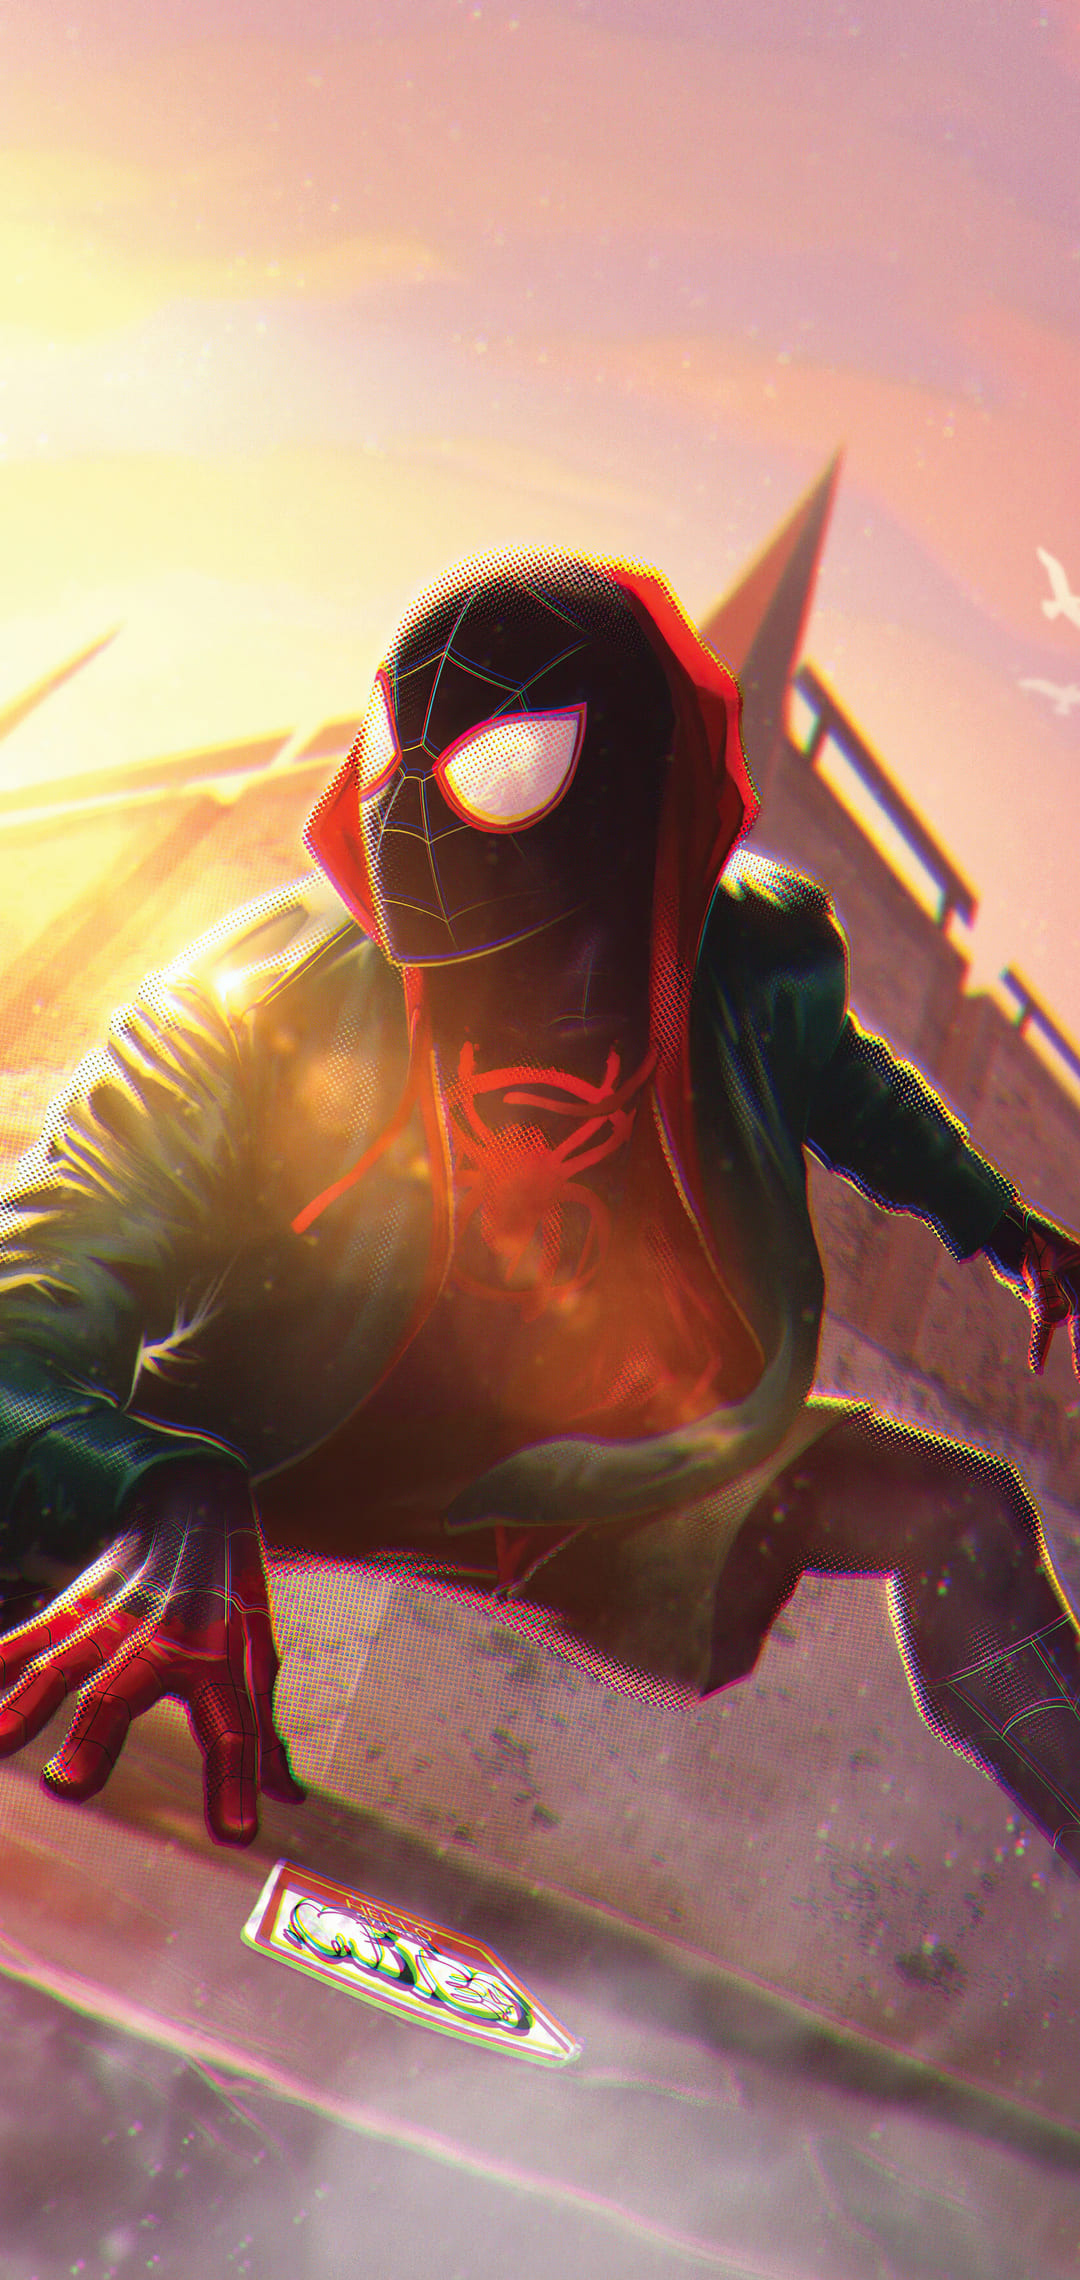 Top 45 Spider Man Miles Morales Wallpapers Free Hd Miles Morales Backgrounds